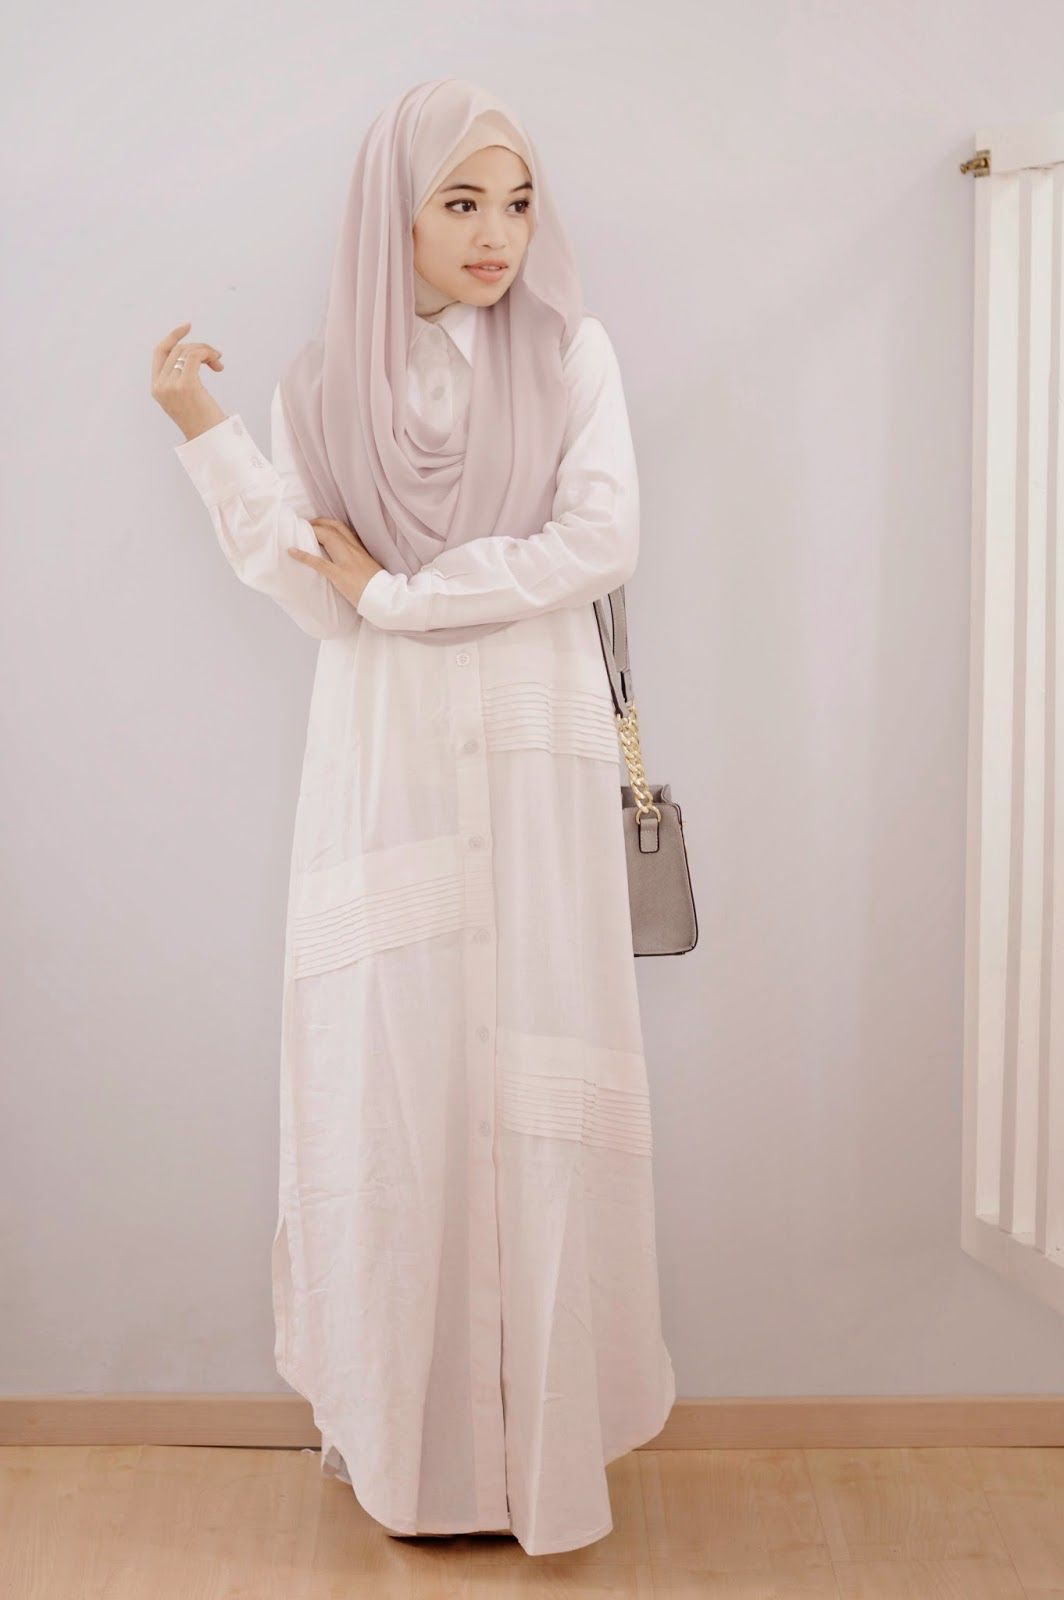 Gdaus gallery daily style hijab wear pinterest daily style